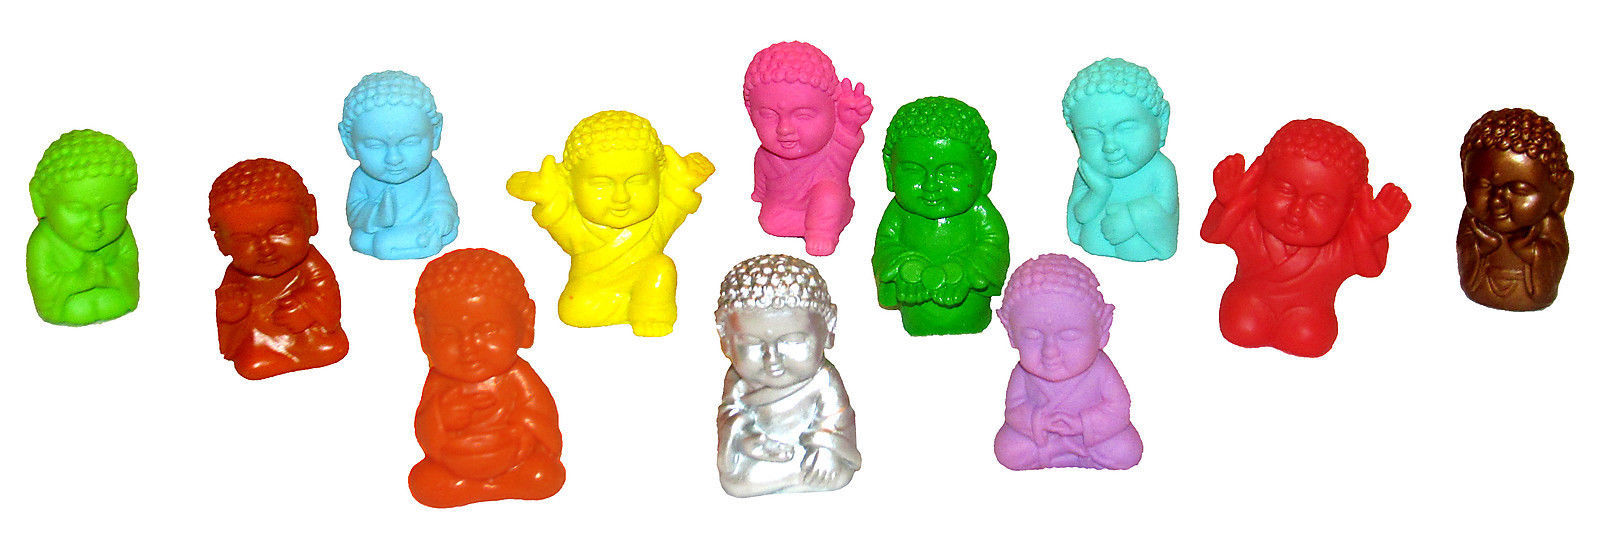 Pocket Buddha Buddhism Min Figure Figurine Toy Series 1 & 2, Set of 12